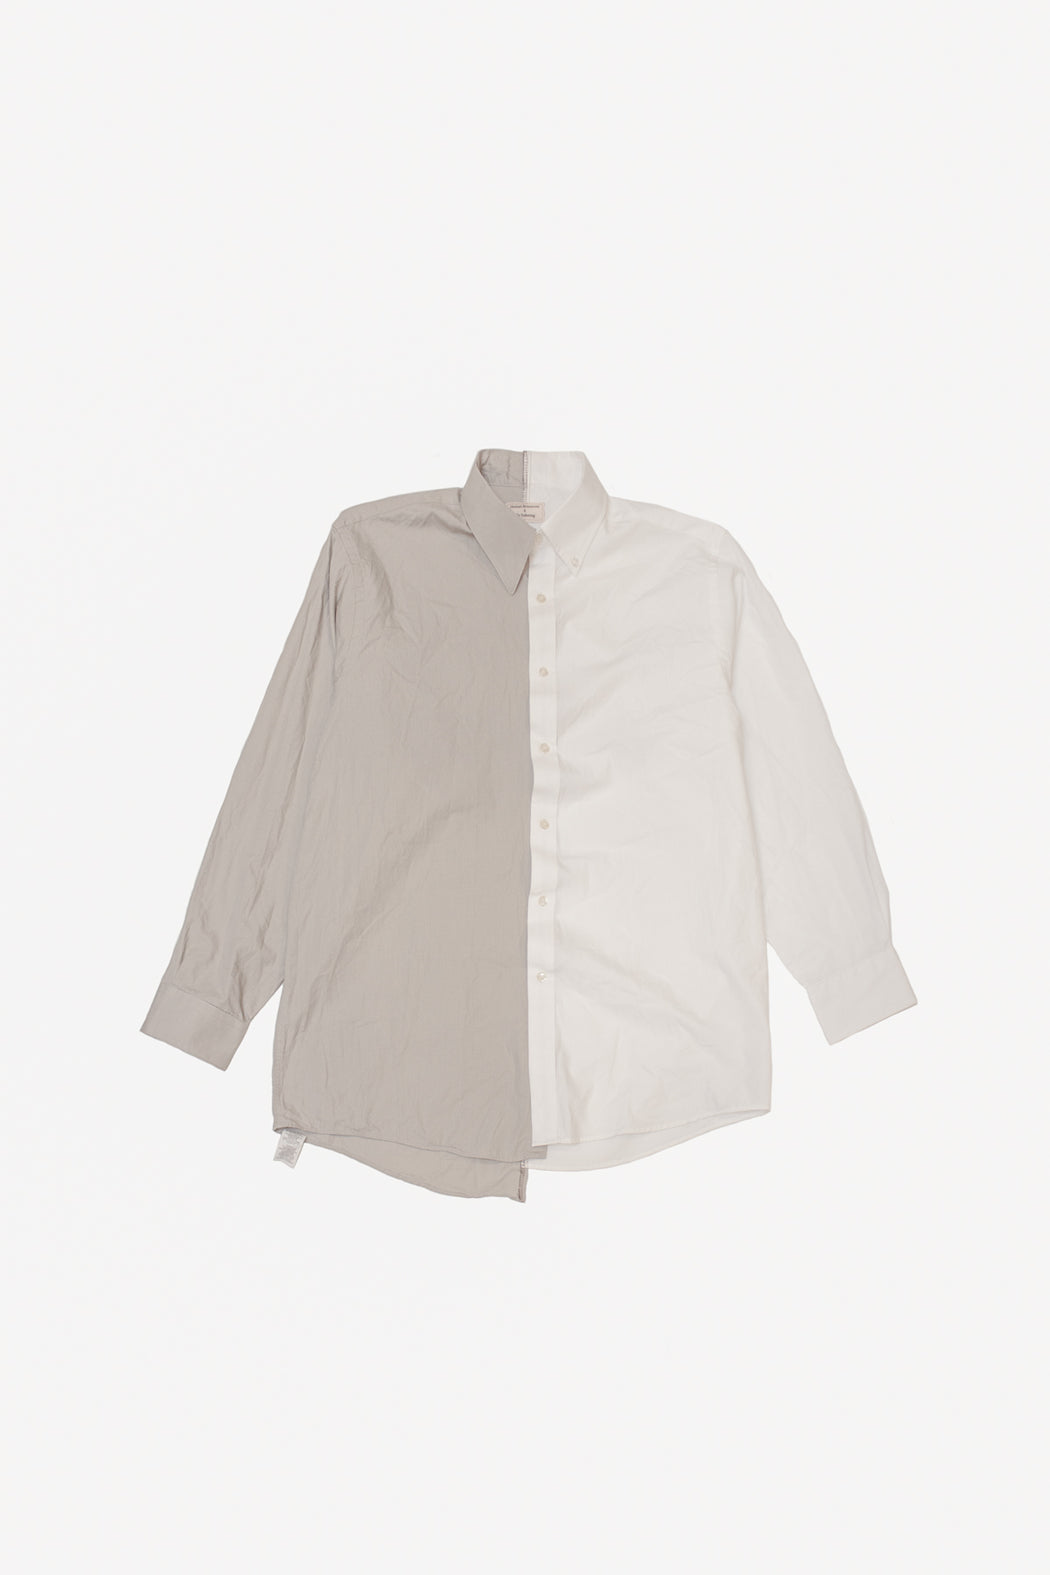 Re-Worked 2-Tone Button-Up | No. 04